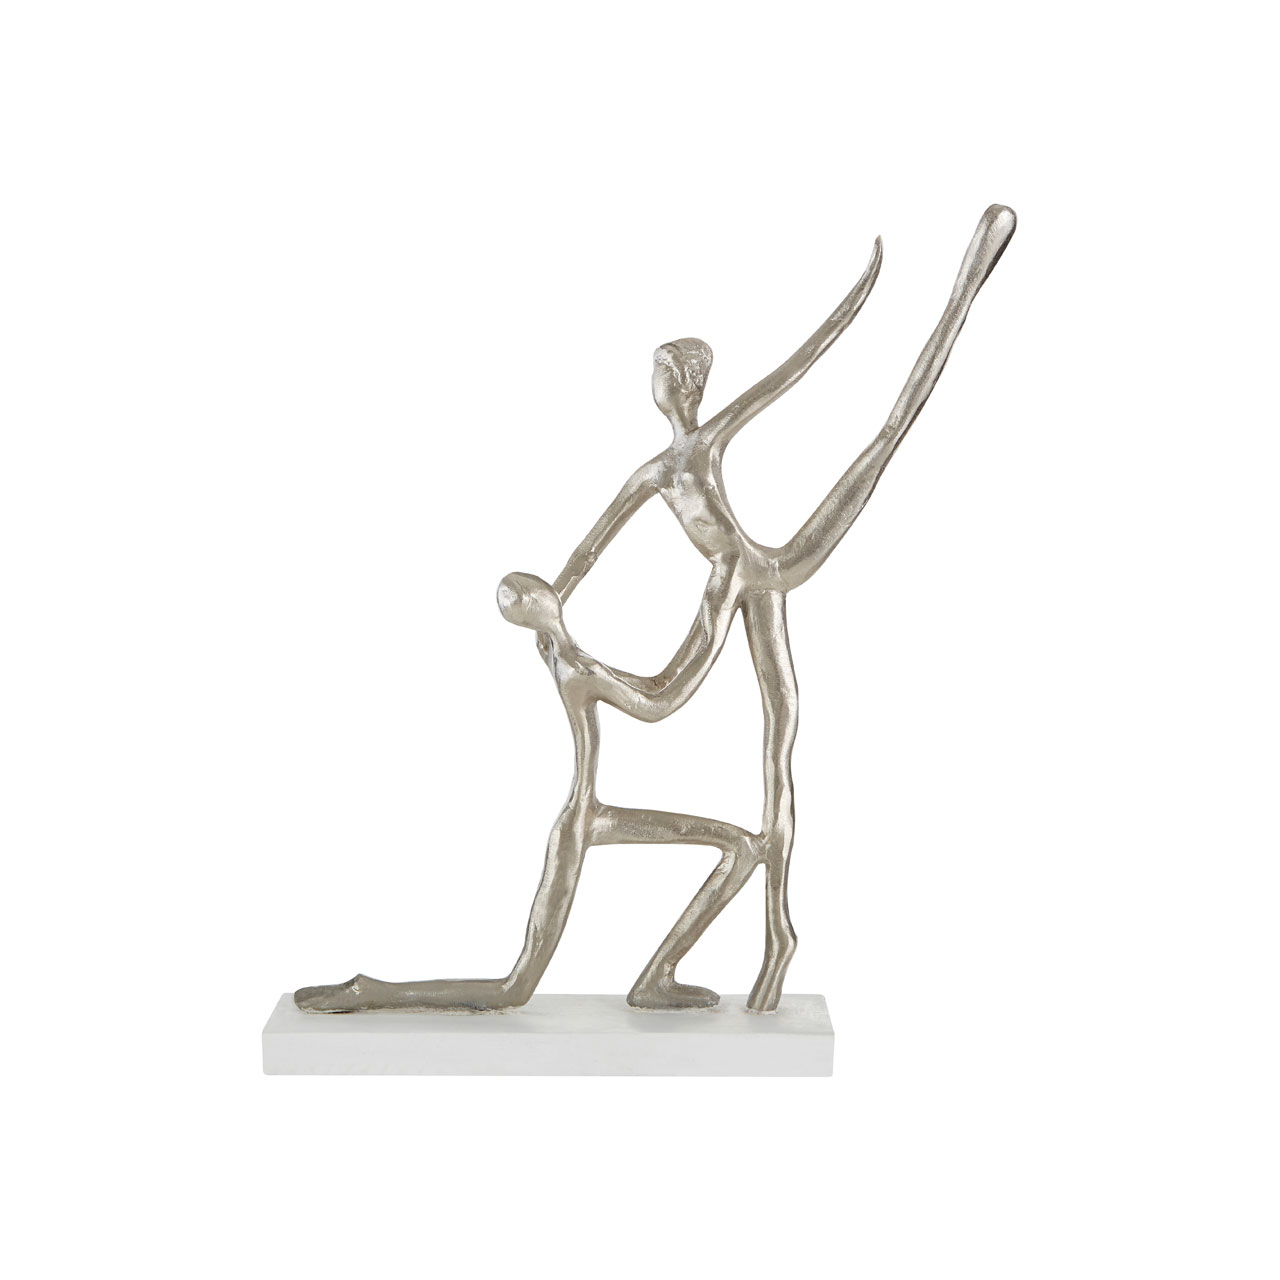 Prime Furnishing Complements Dancing Couple Figurine - Silver